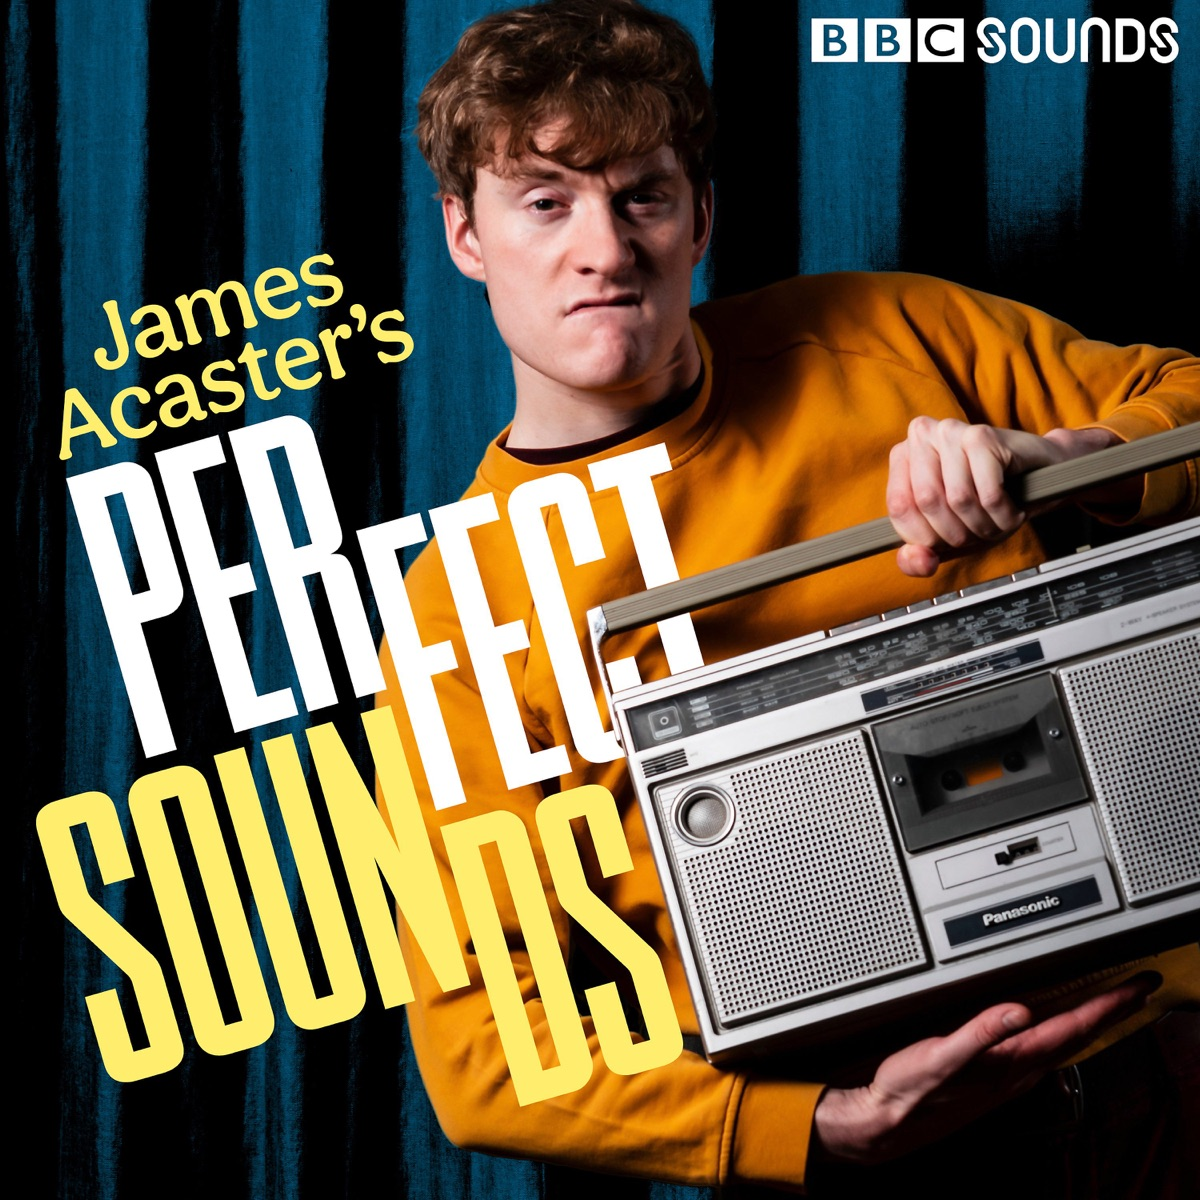 James Acaster's Perfect Sounds